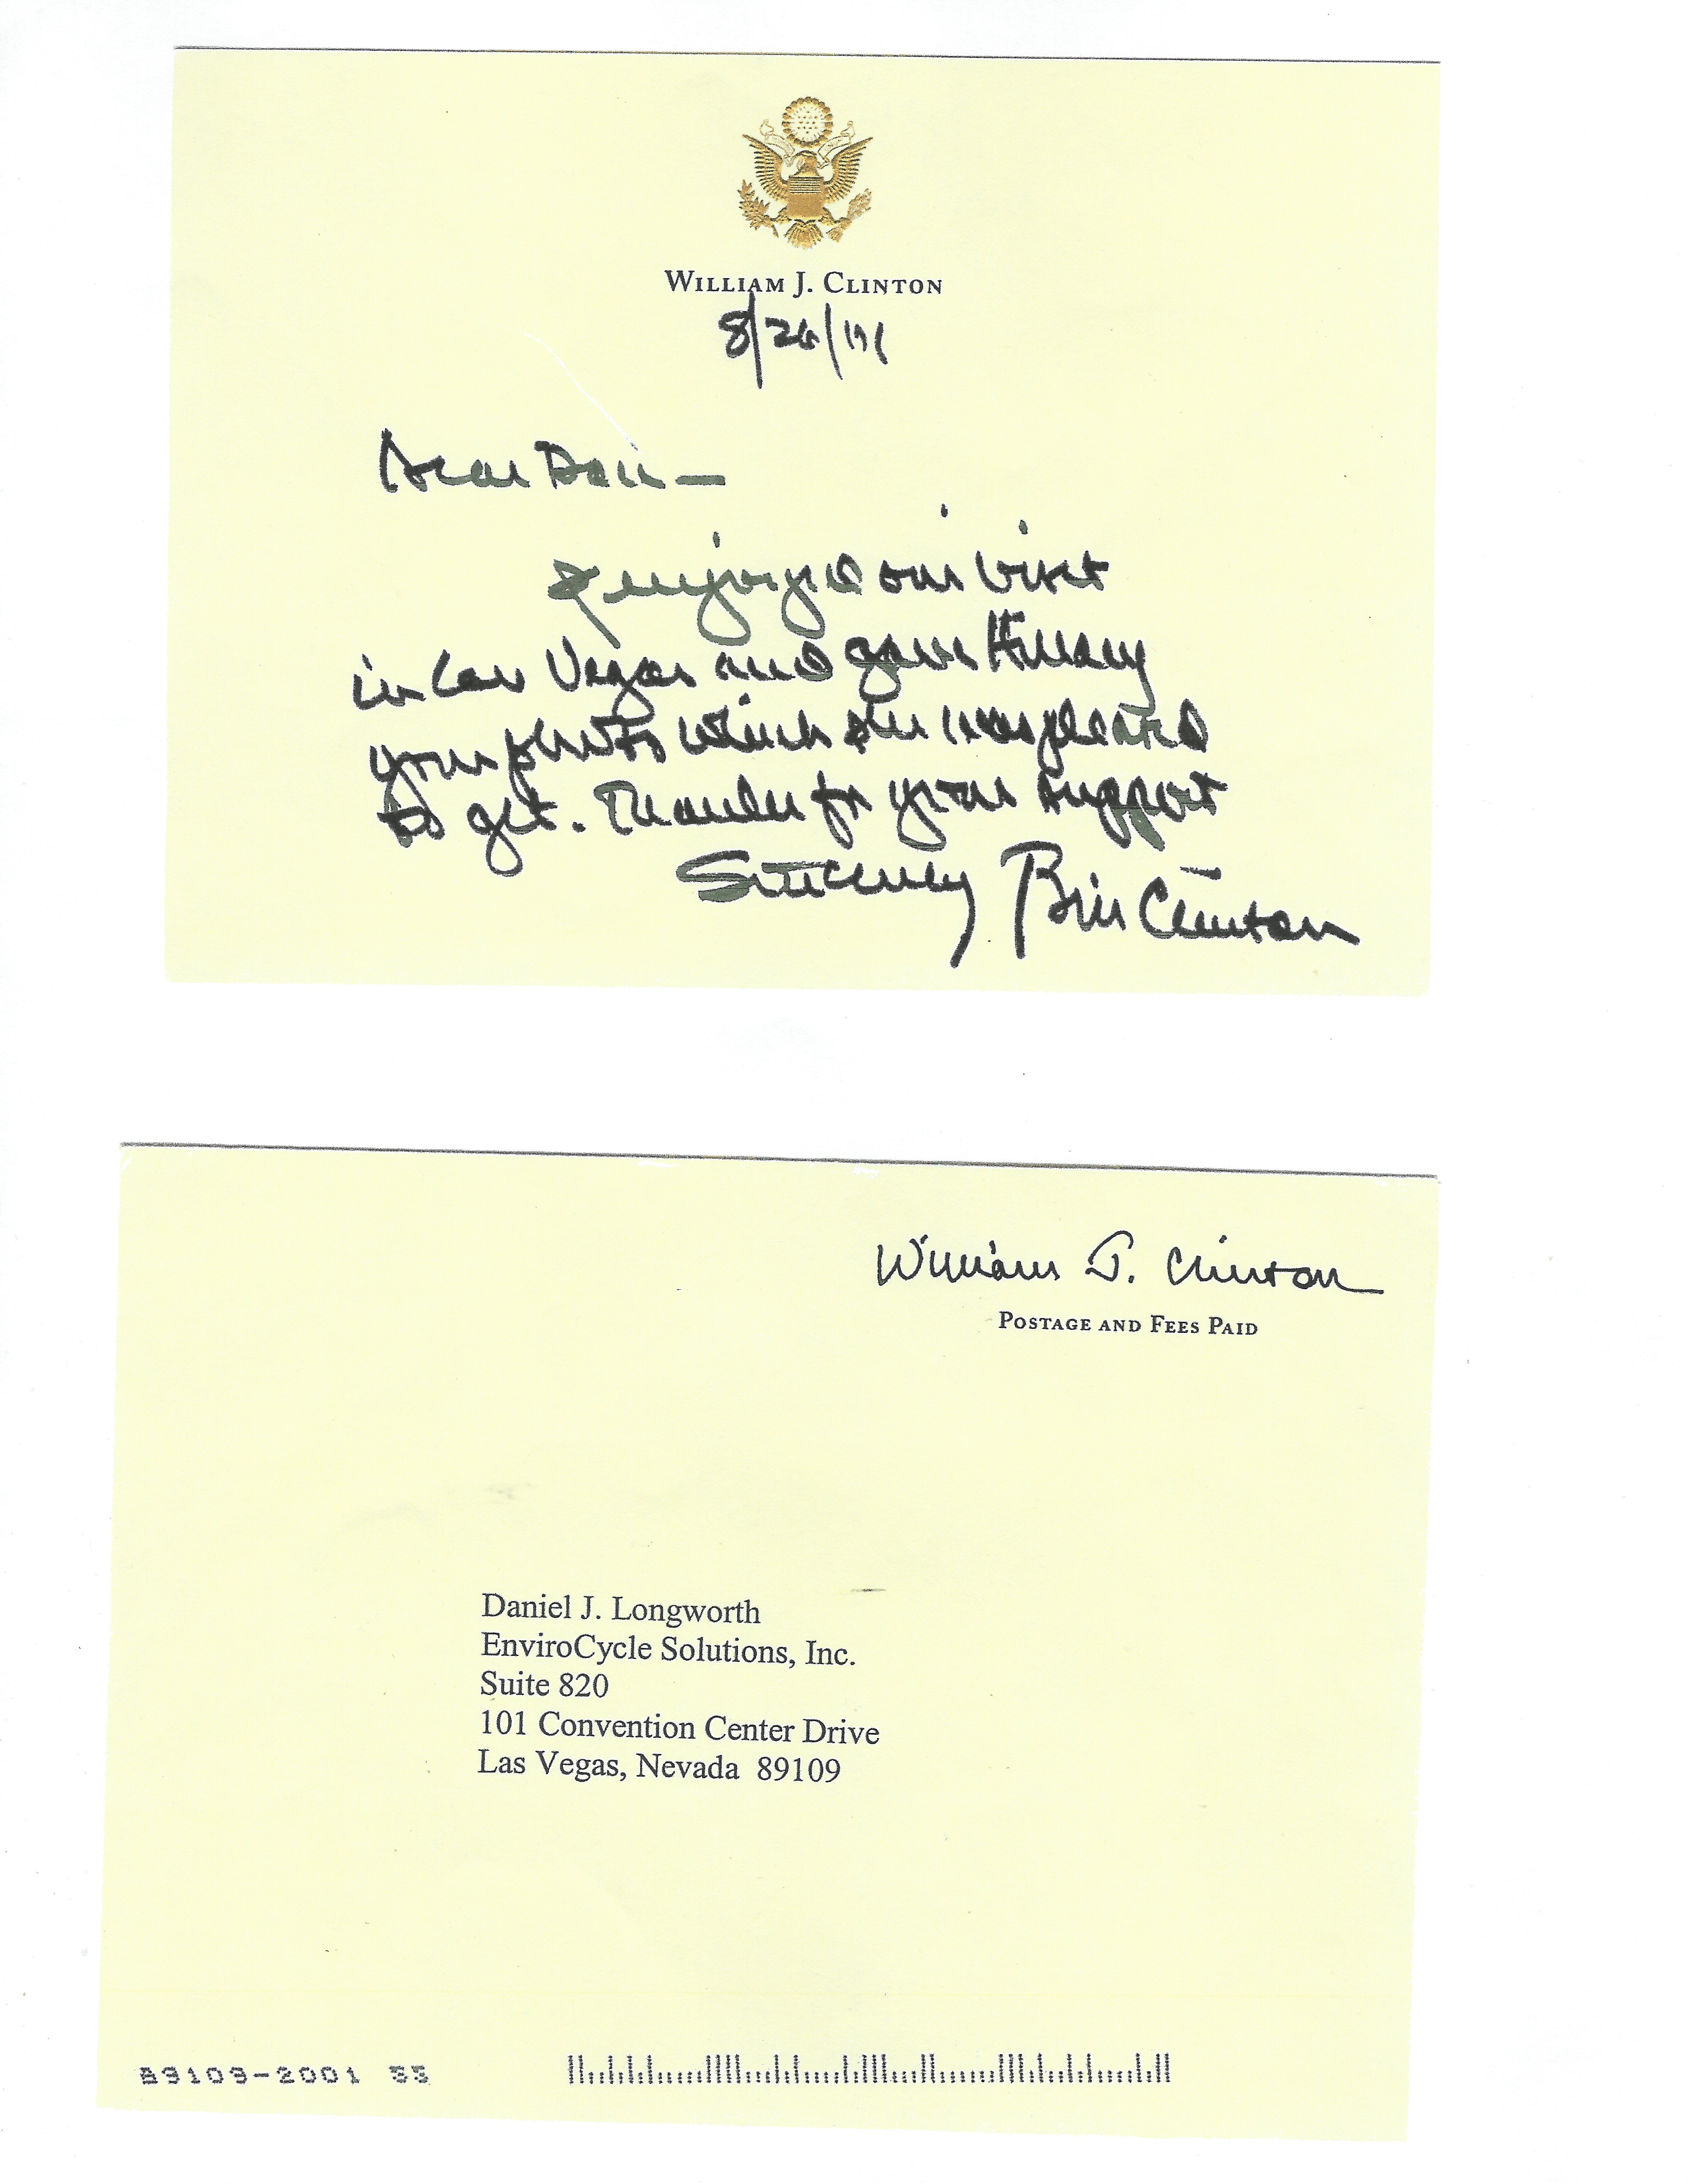 Thank you Note from Bill Clinton.